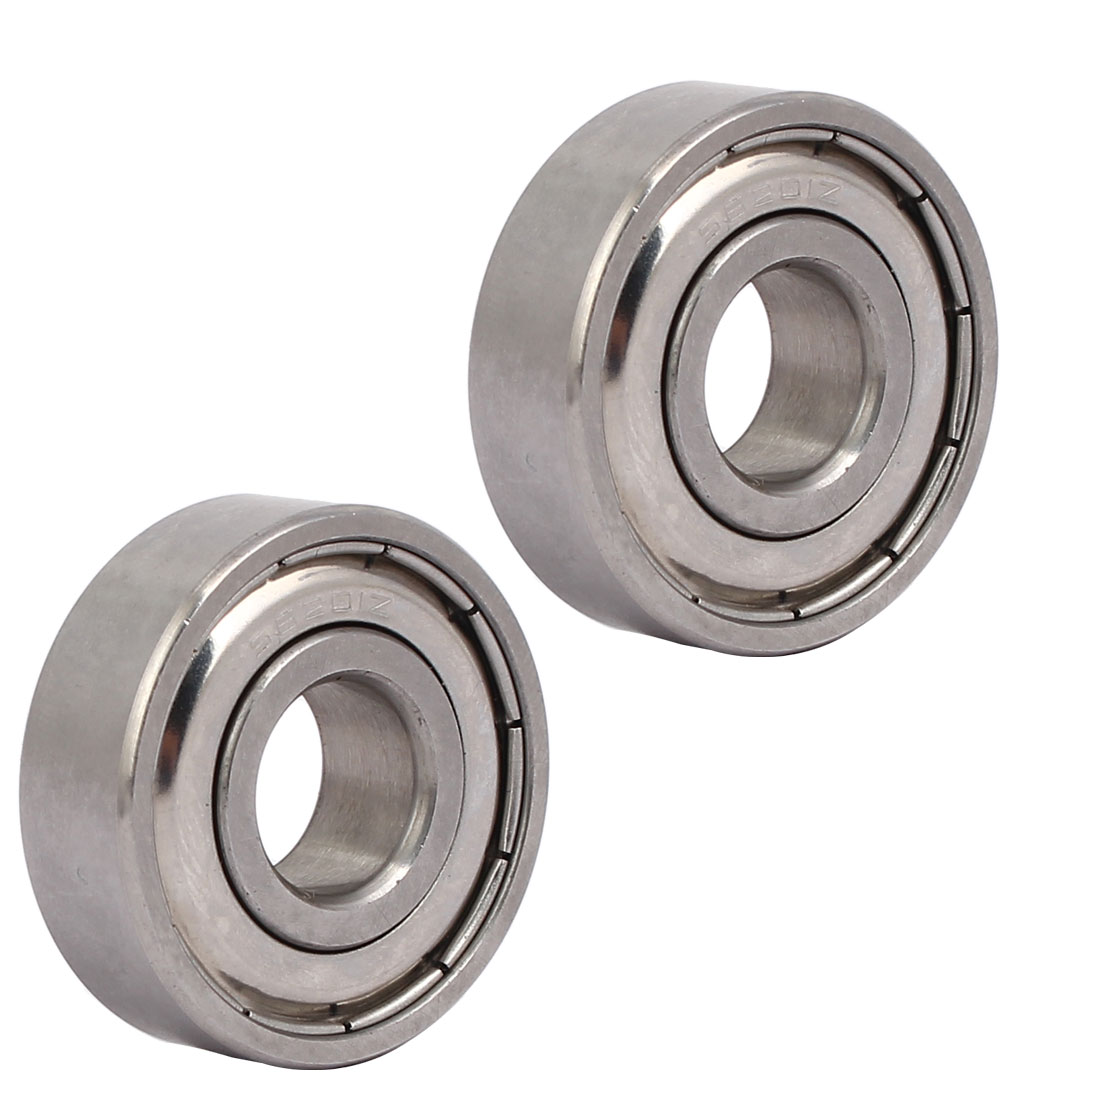 6201 32mmx12mmx10mm Stainless Steel Shielded Deep Groove Ball Bearing 2pcs